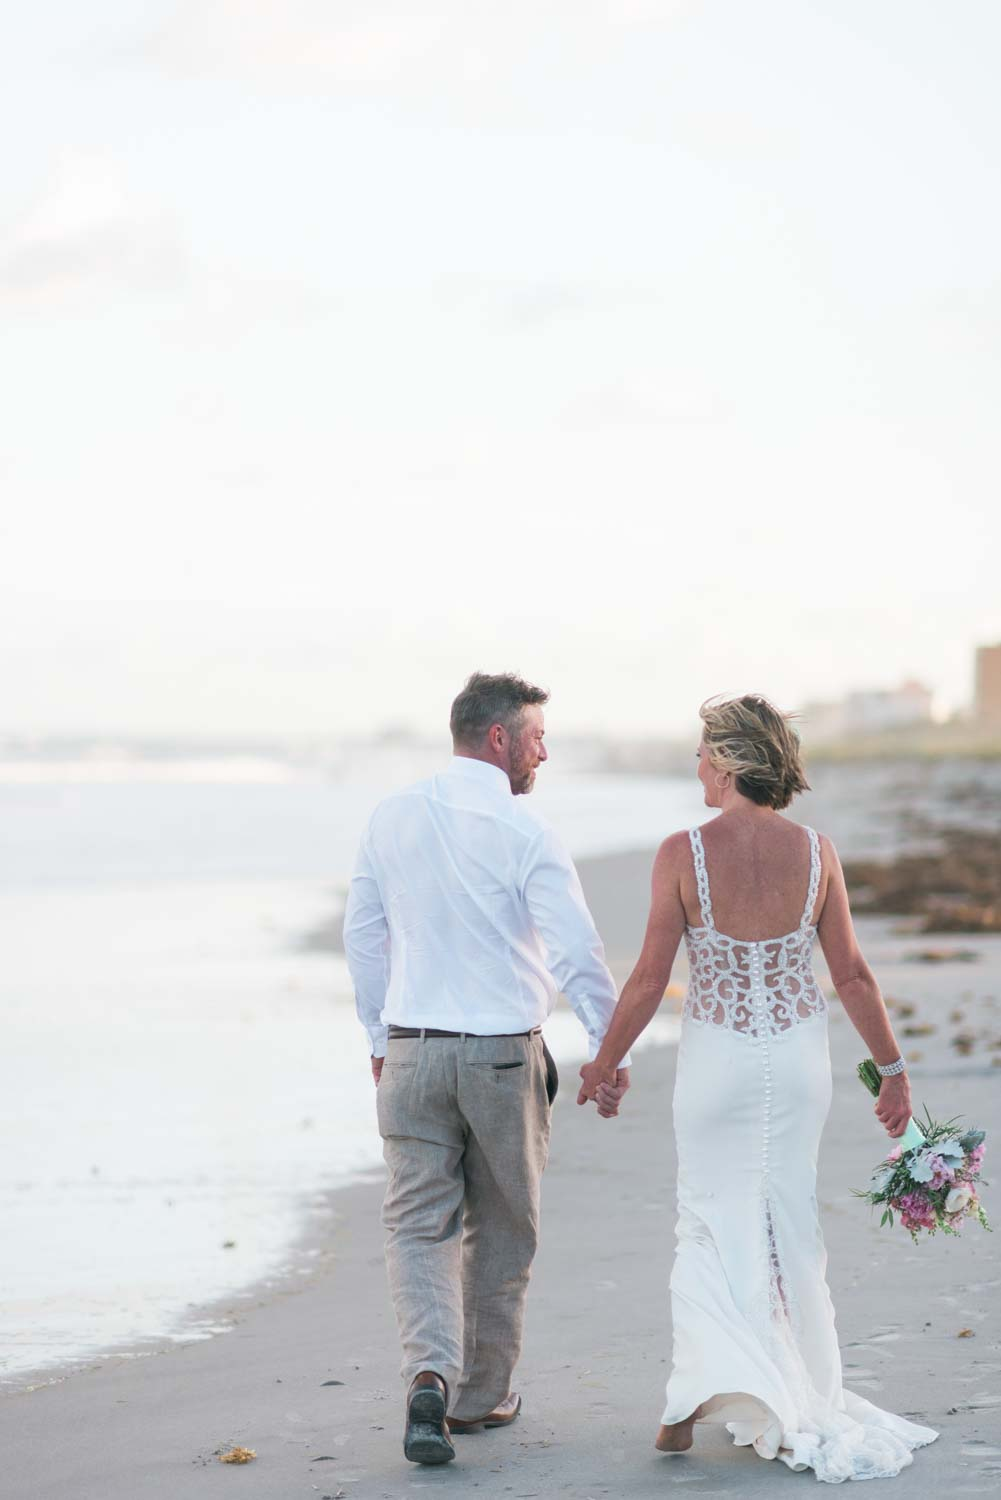 Cape Canaveral Beach Wedding Photographer - Rania Marie Photography-10.jpg